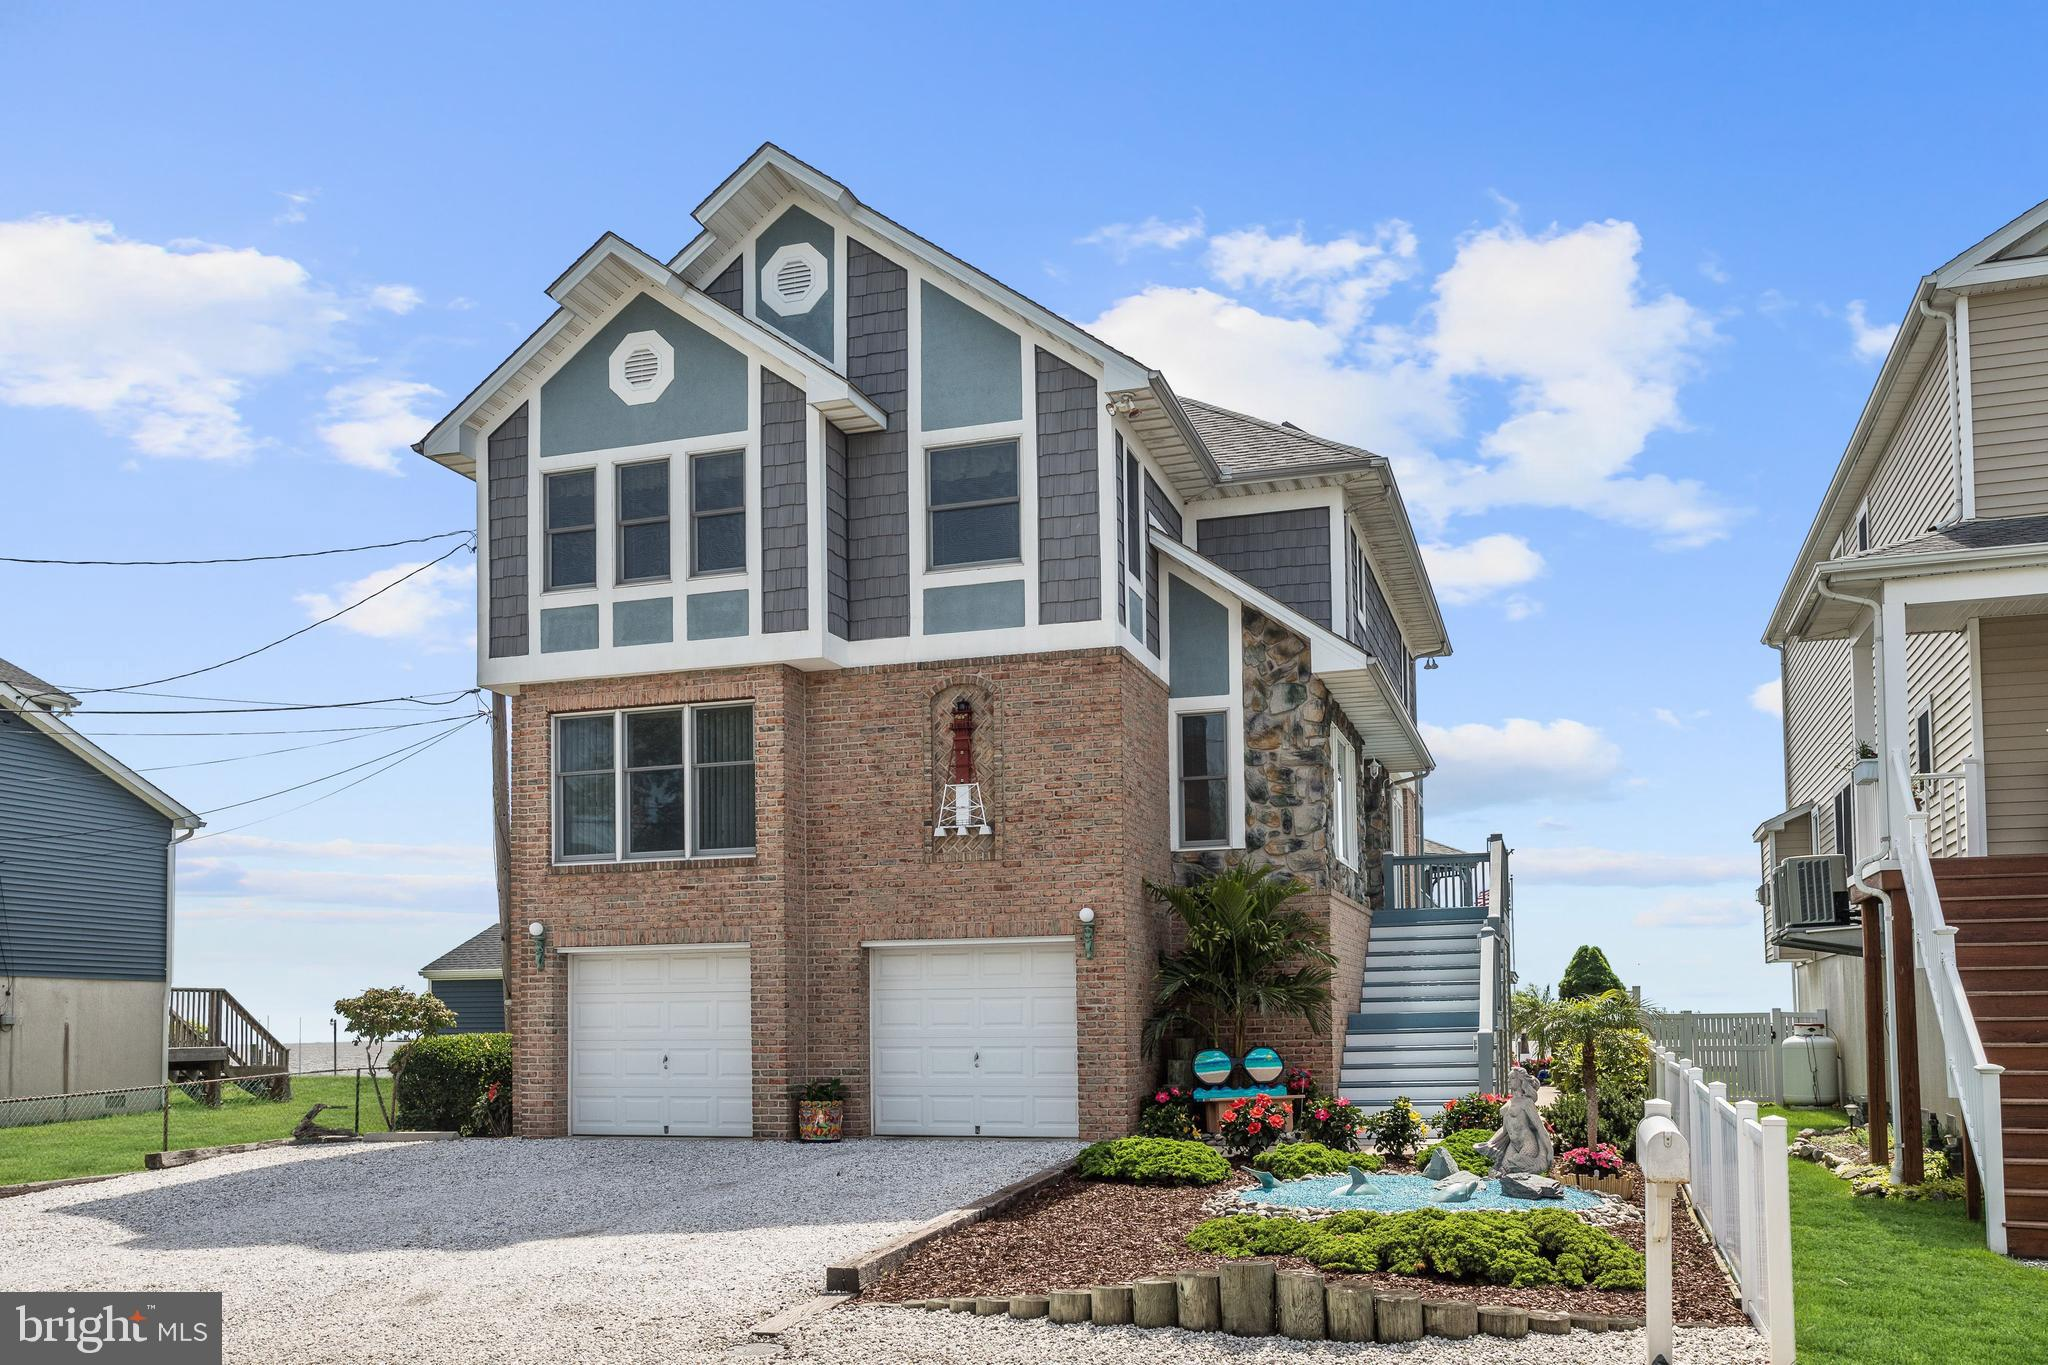 9121 CUCKOLD POINT ROAD, BALTIMORE, MD 21219